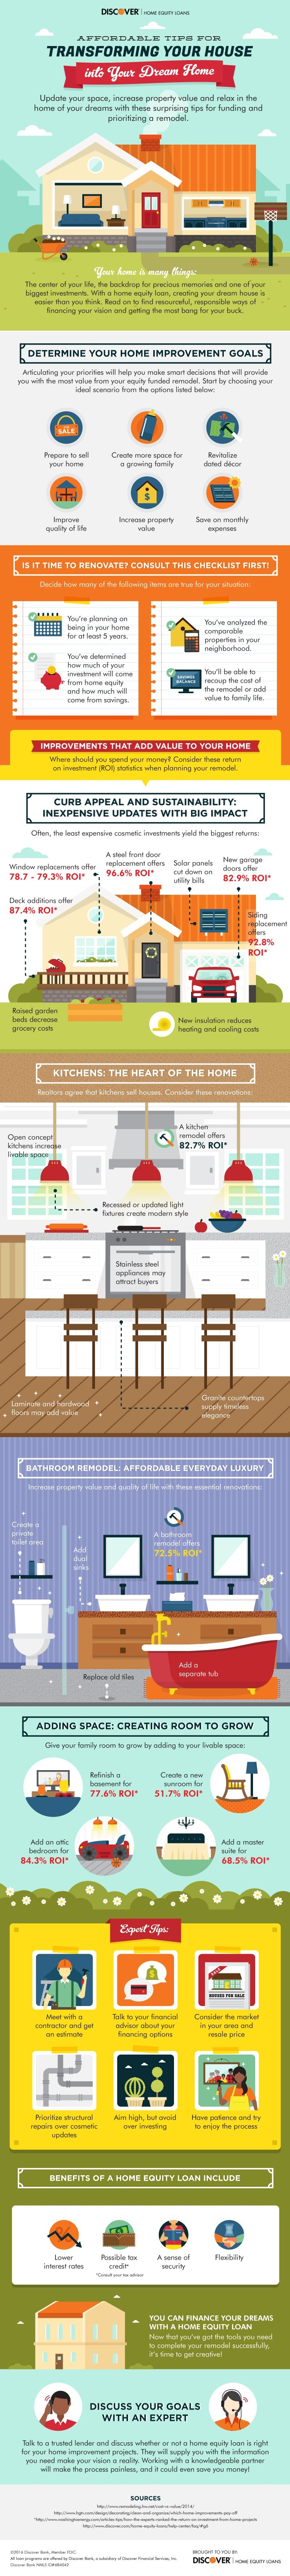 Affordable Home Improvement Ideas for Transforming Your Home #infographic